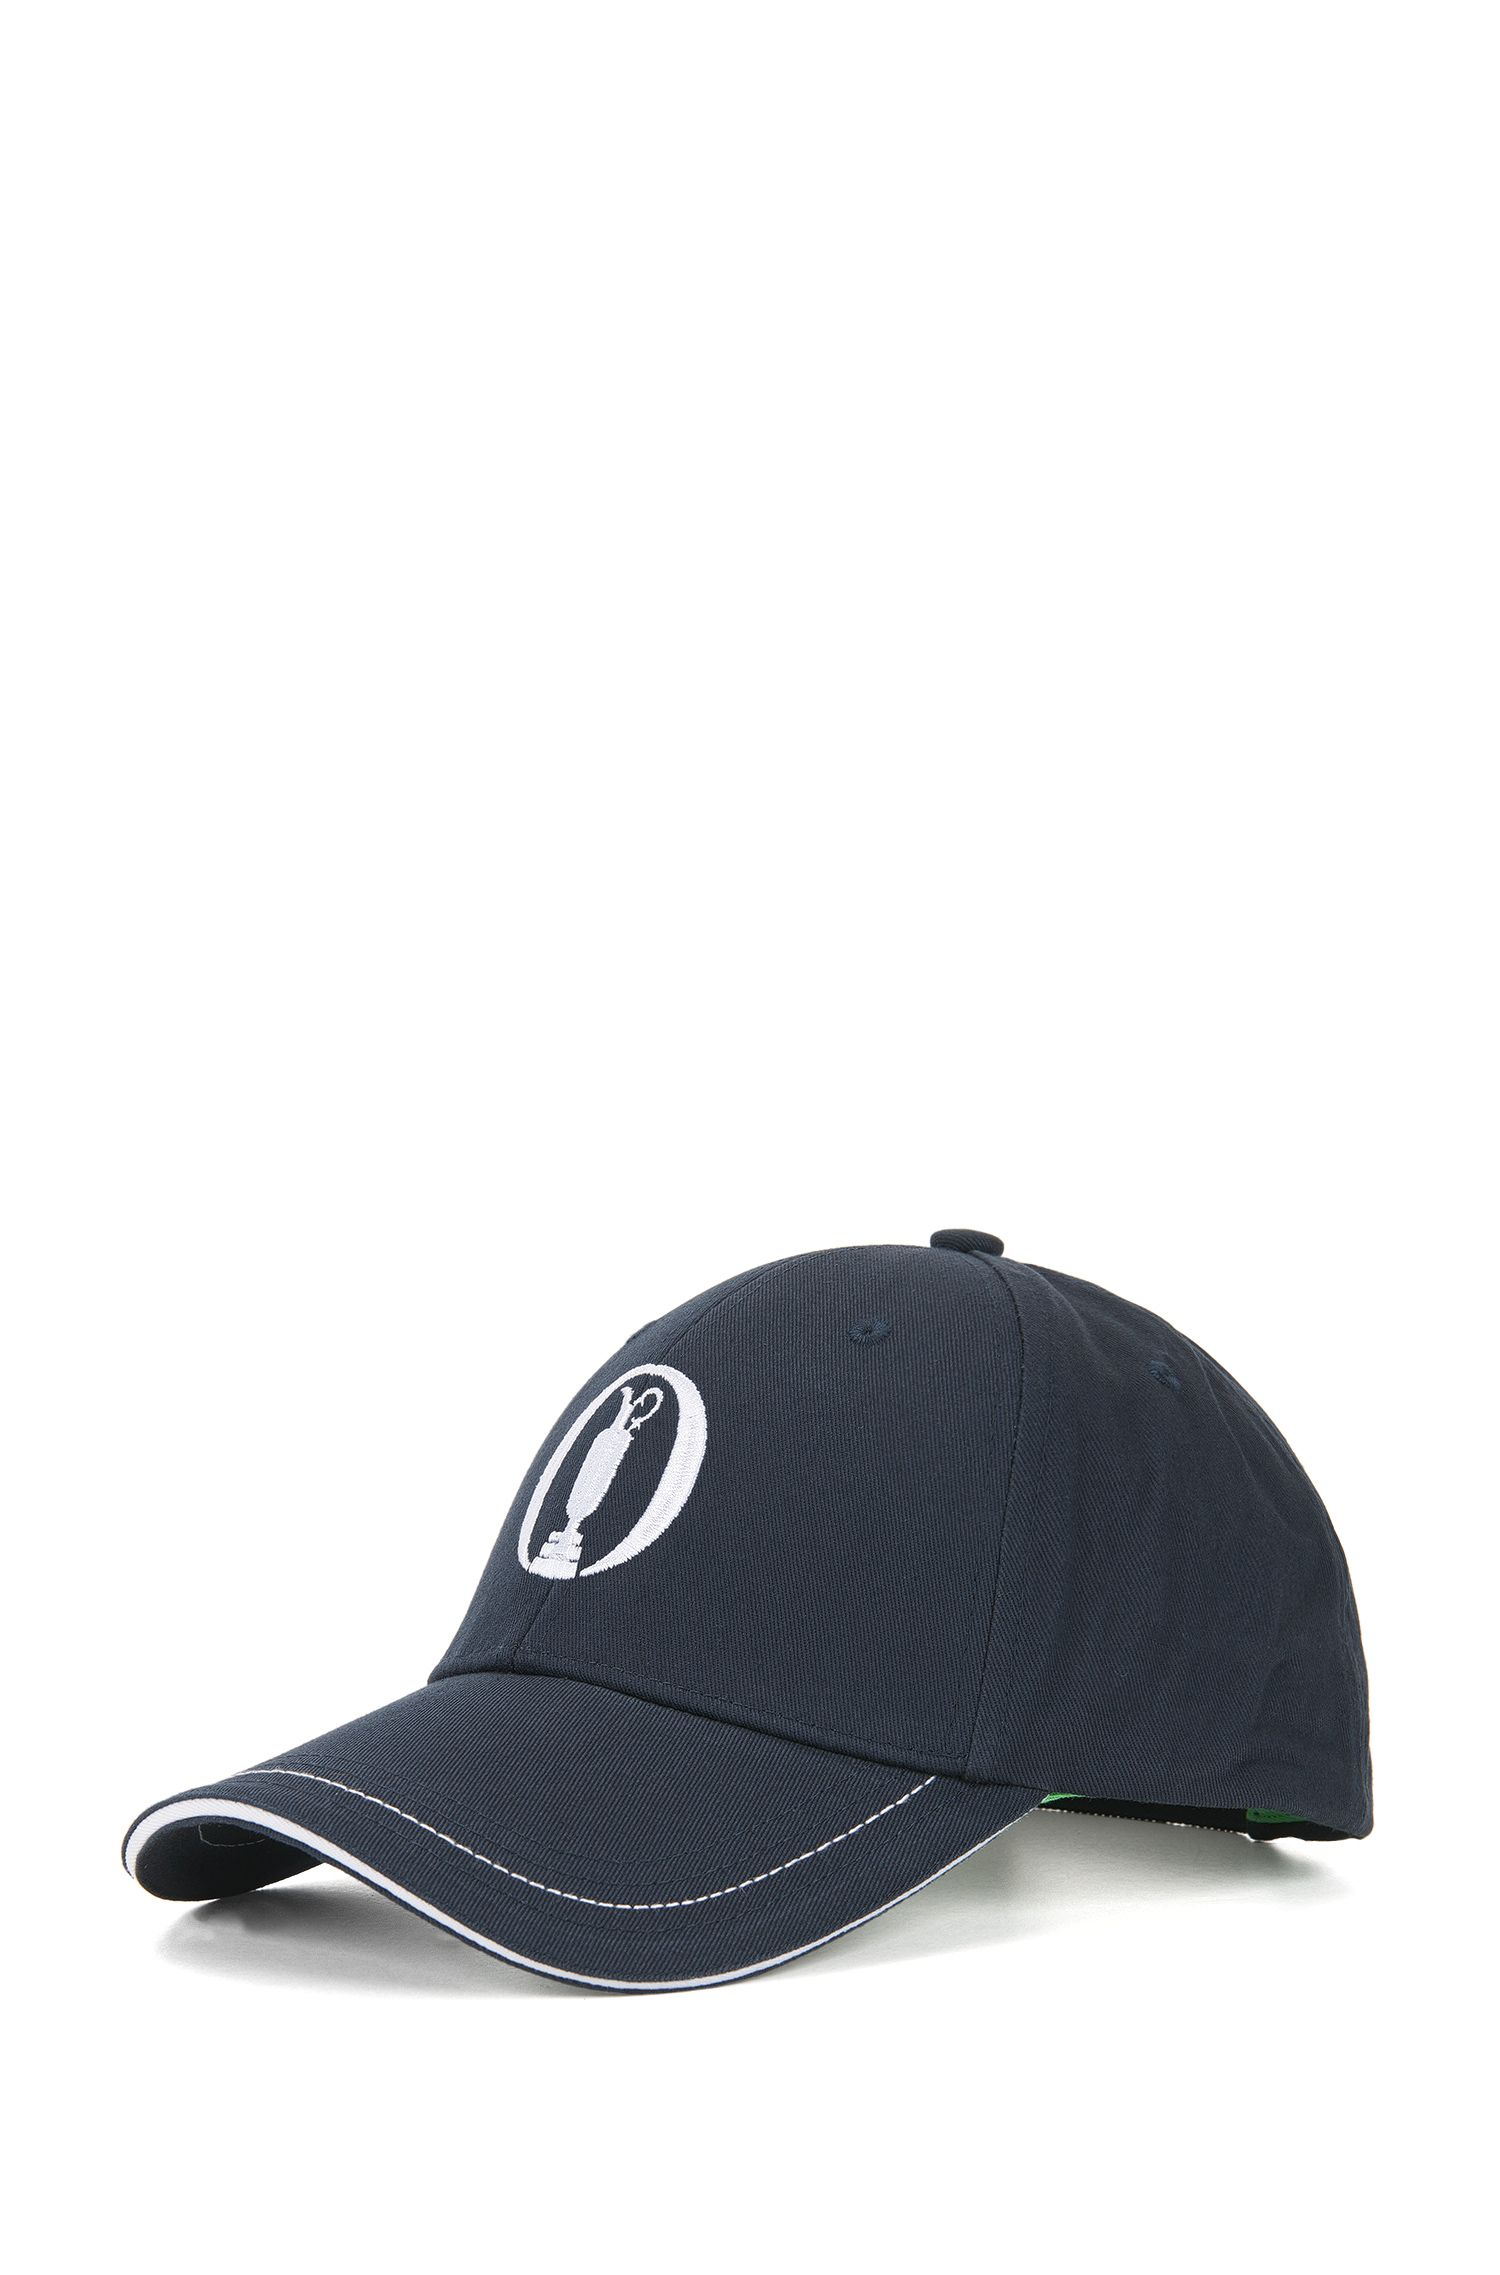 The Open Collection by BOSS cotton-twill baseball cap